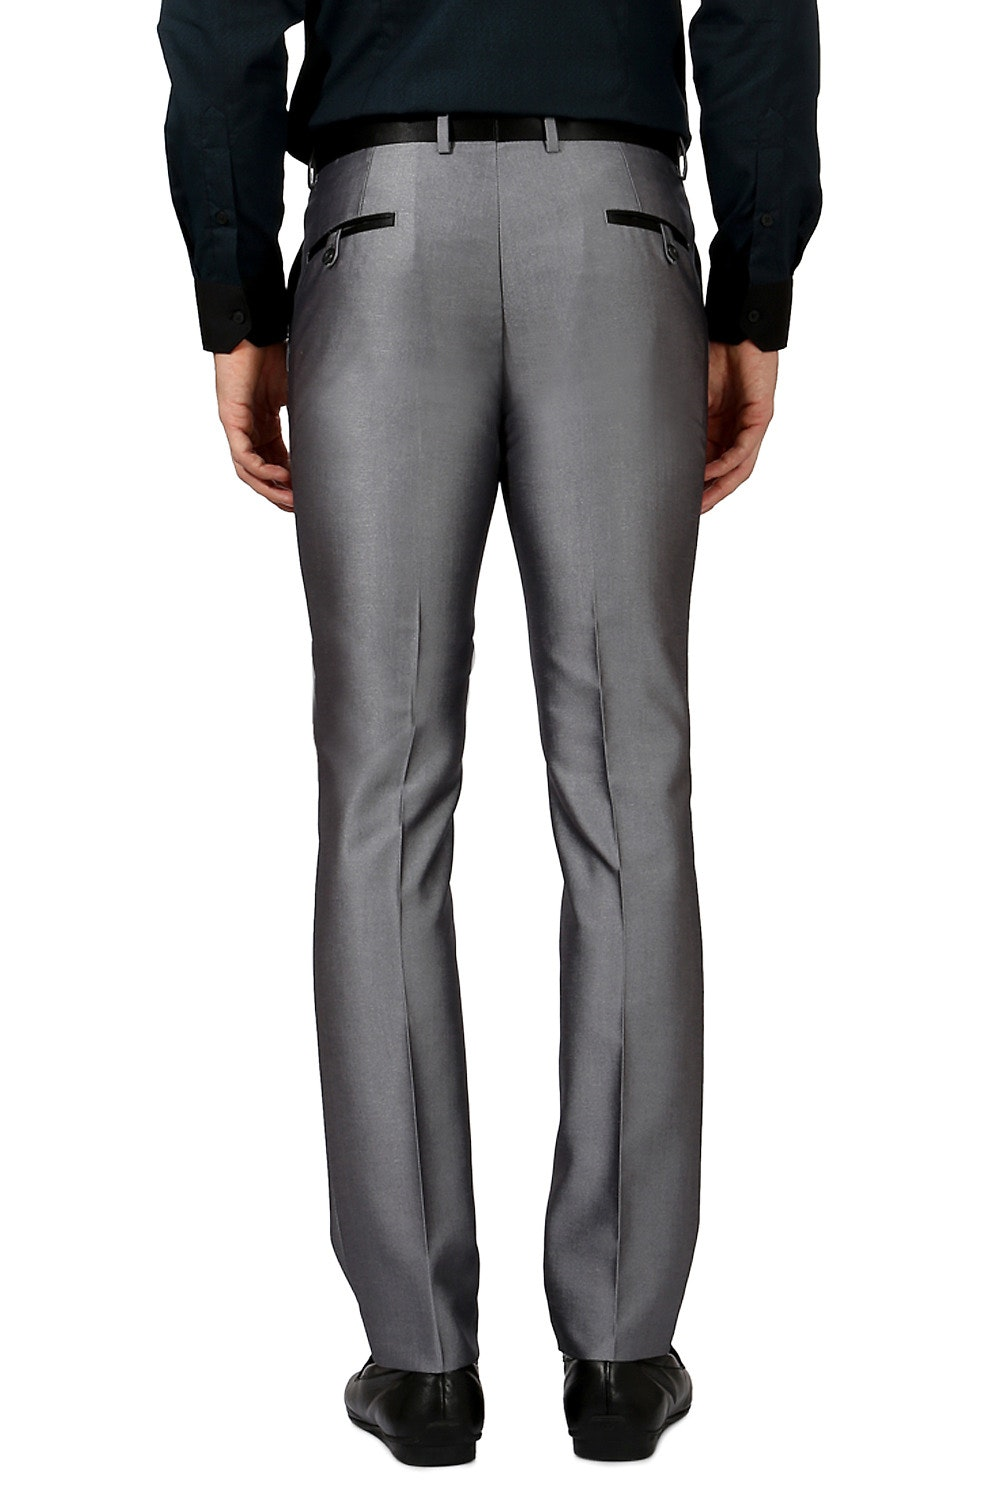 28f36ad8d6 Van Heusen Men s Trousers   Chinos-Buy Van Heusen Trouser   Chinos ...